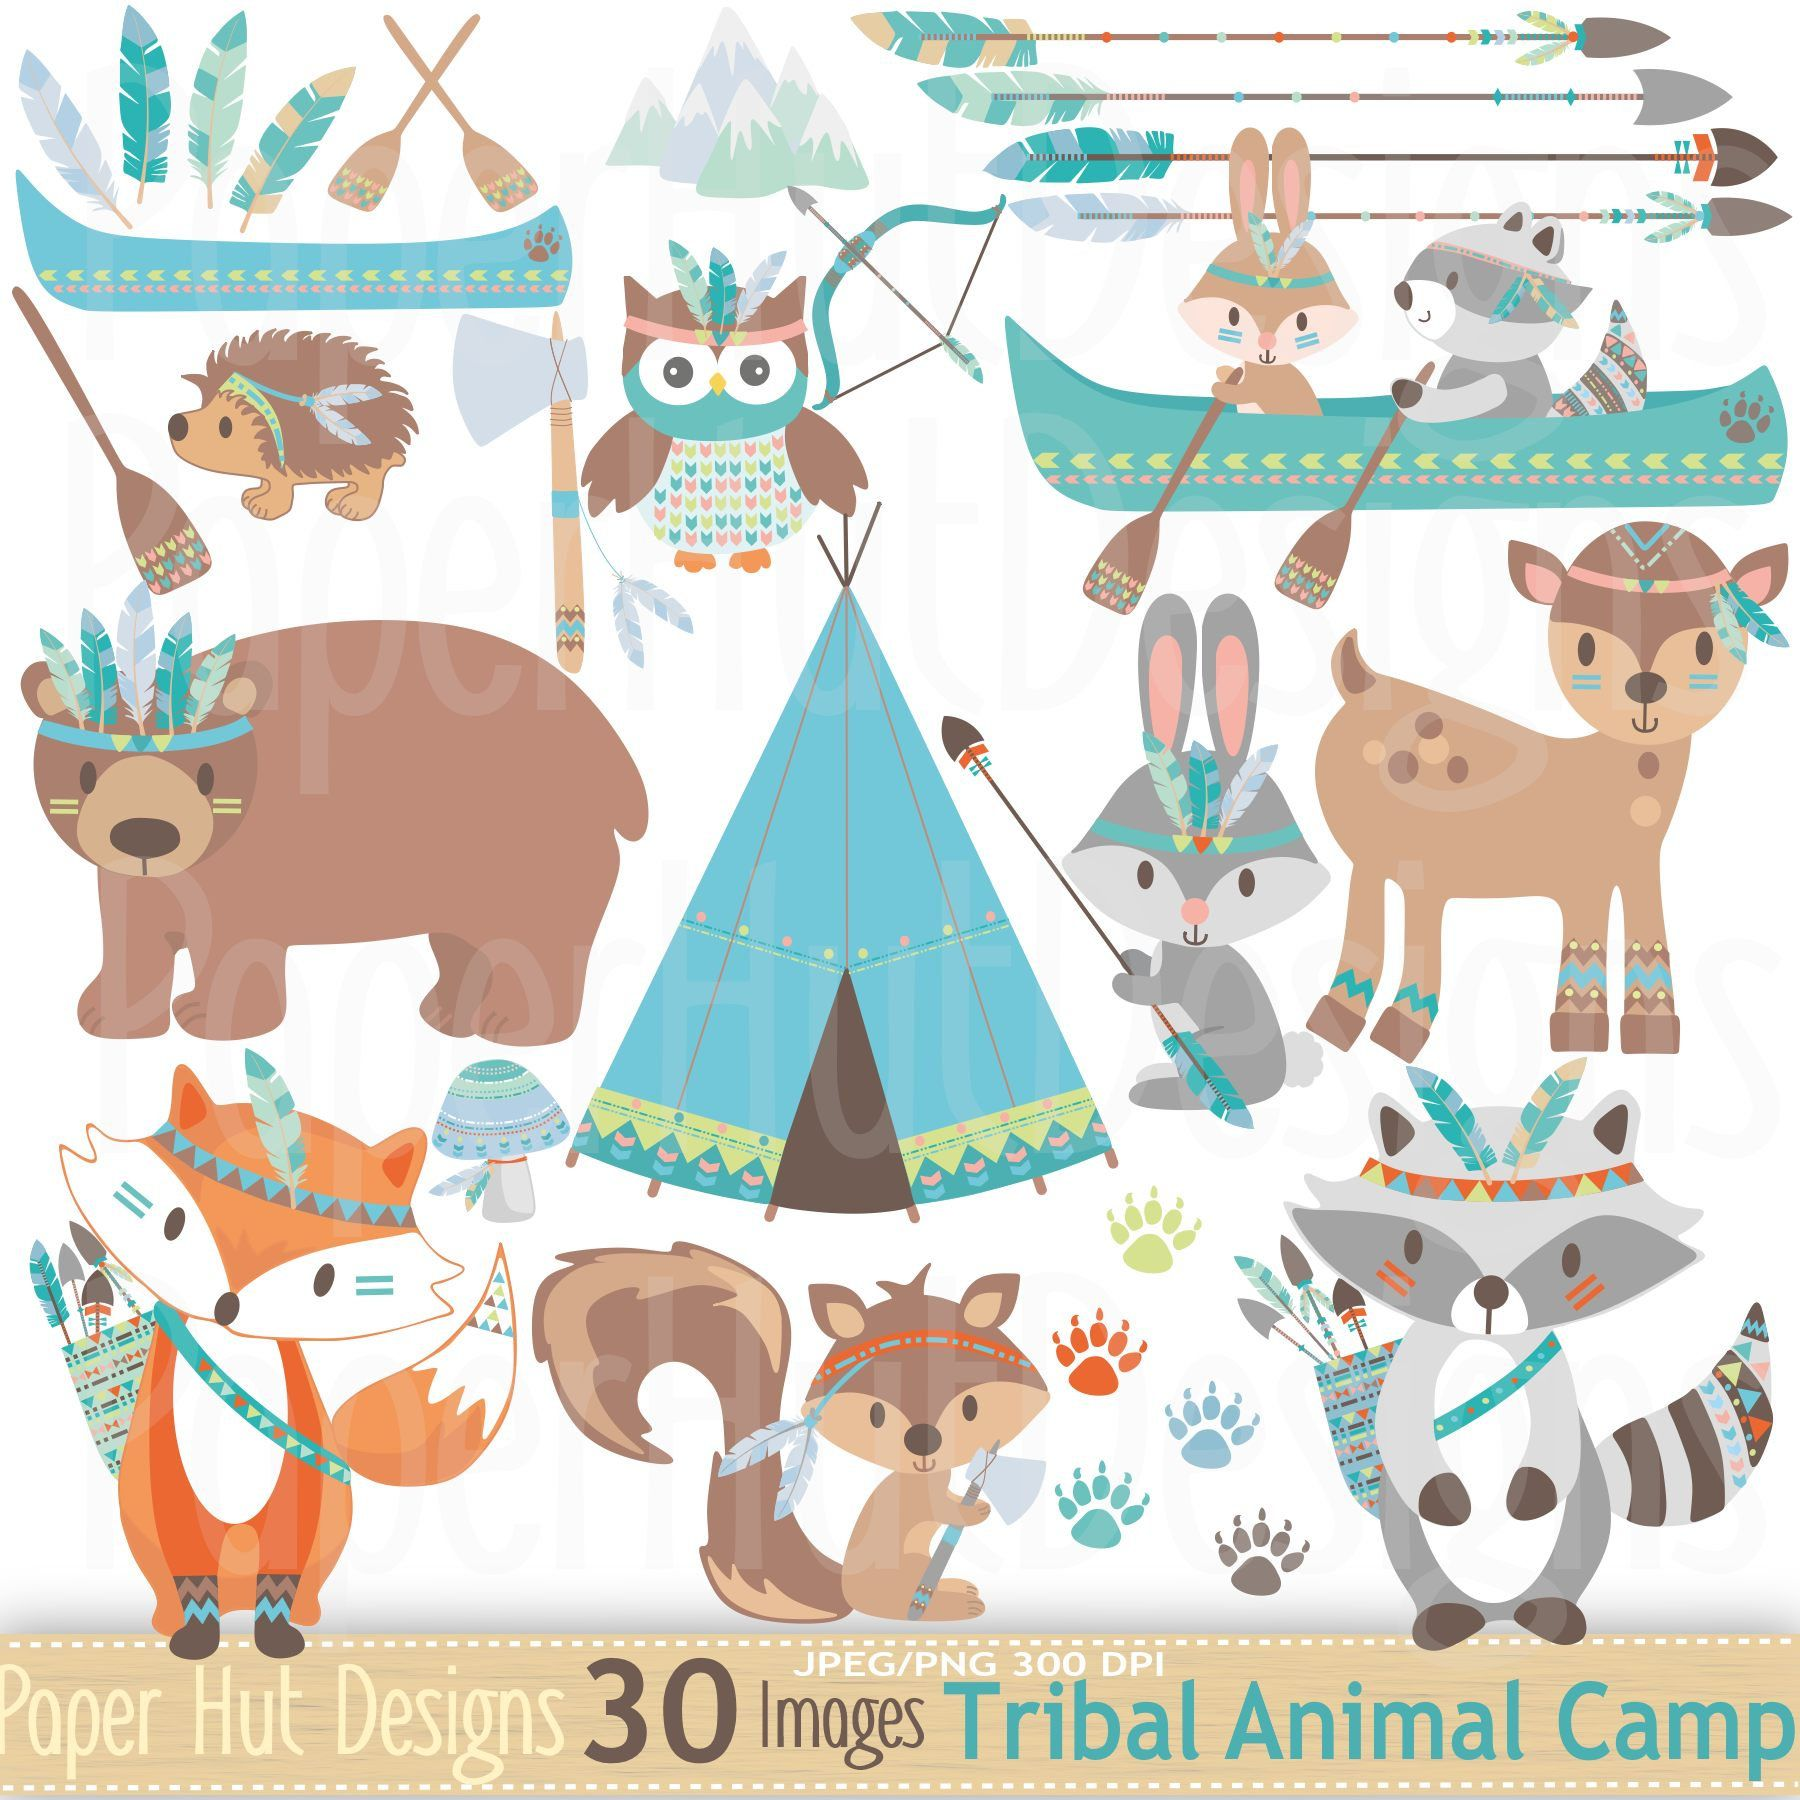 Bottle brush woodland animals - Tribal Animals Clipart Woodland Animals Camping Clip Art Cute Tribal Forest Animals Fox Bear Rabbit Racoon Owl Deer Canoe Arrows Feathers